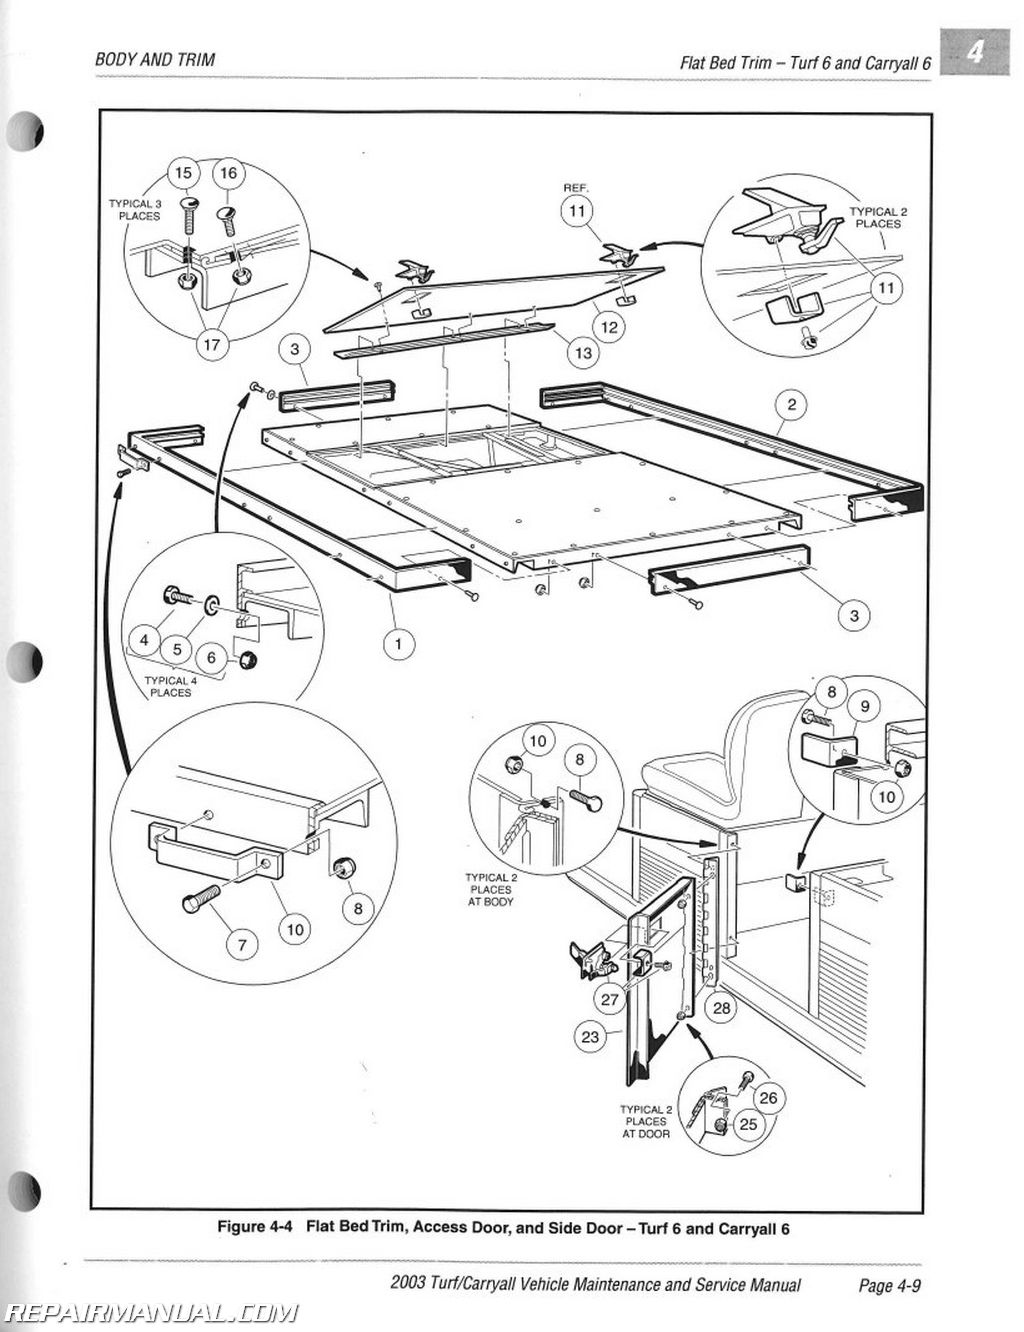 Club Car Carryall 2 Lights Diagram Trusted Schematics 2000 Carry All Wiring Headlights Turf Parts Battery